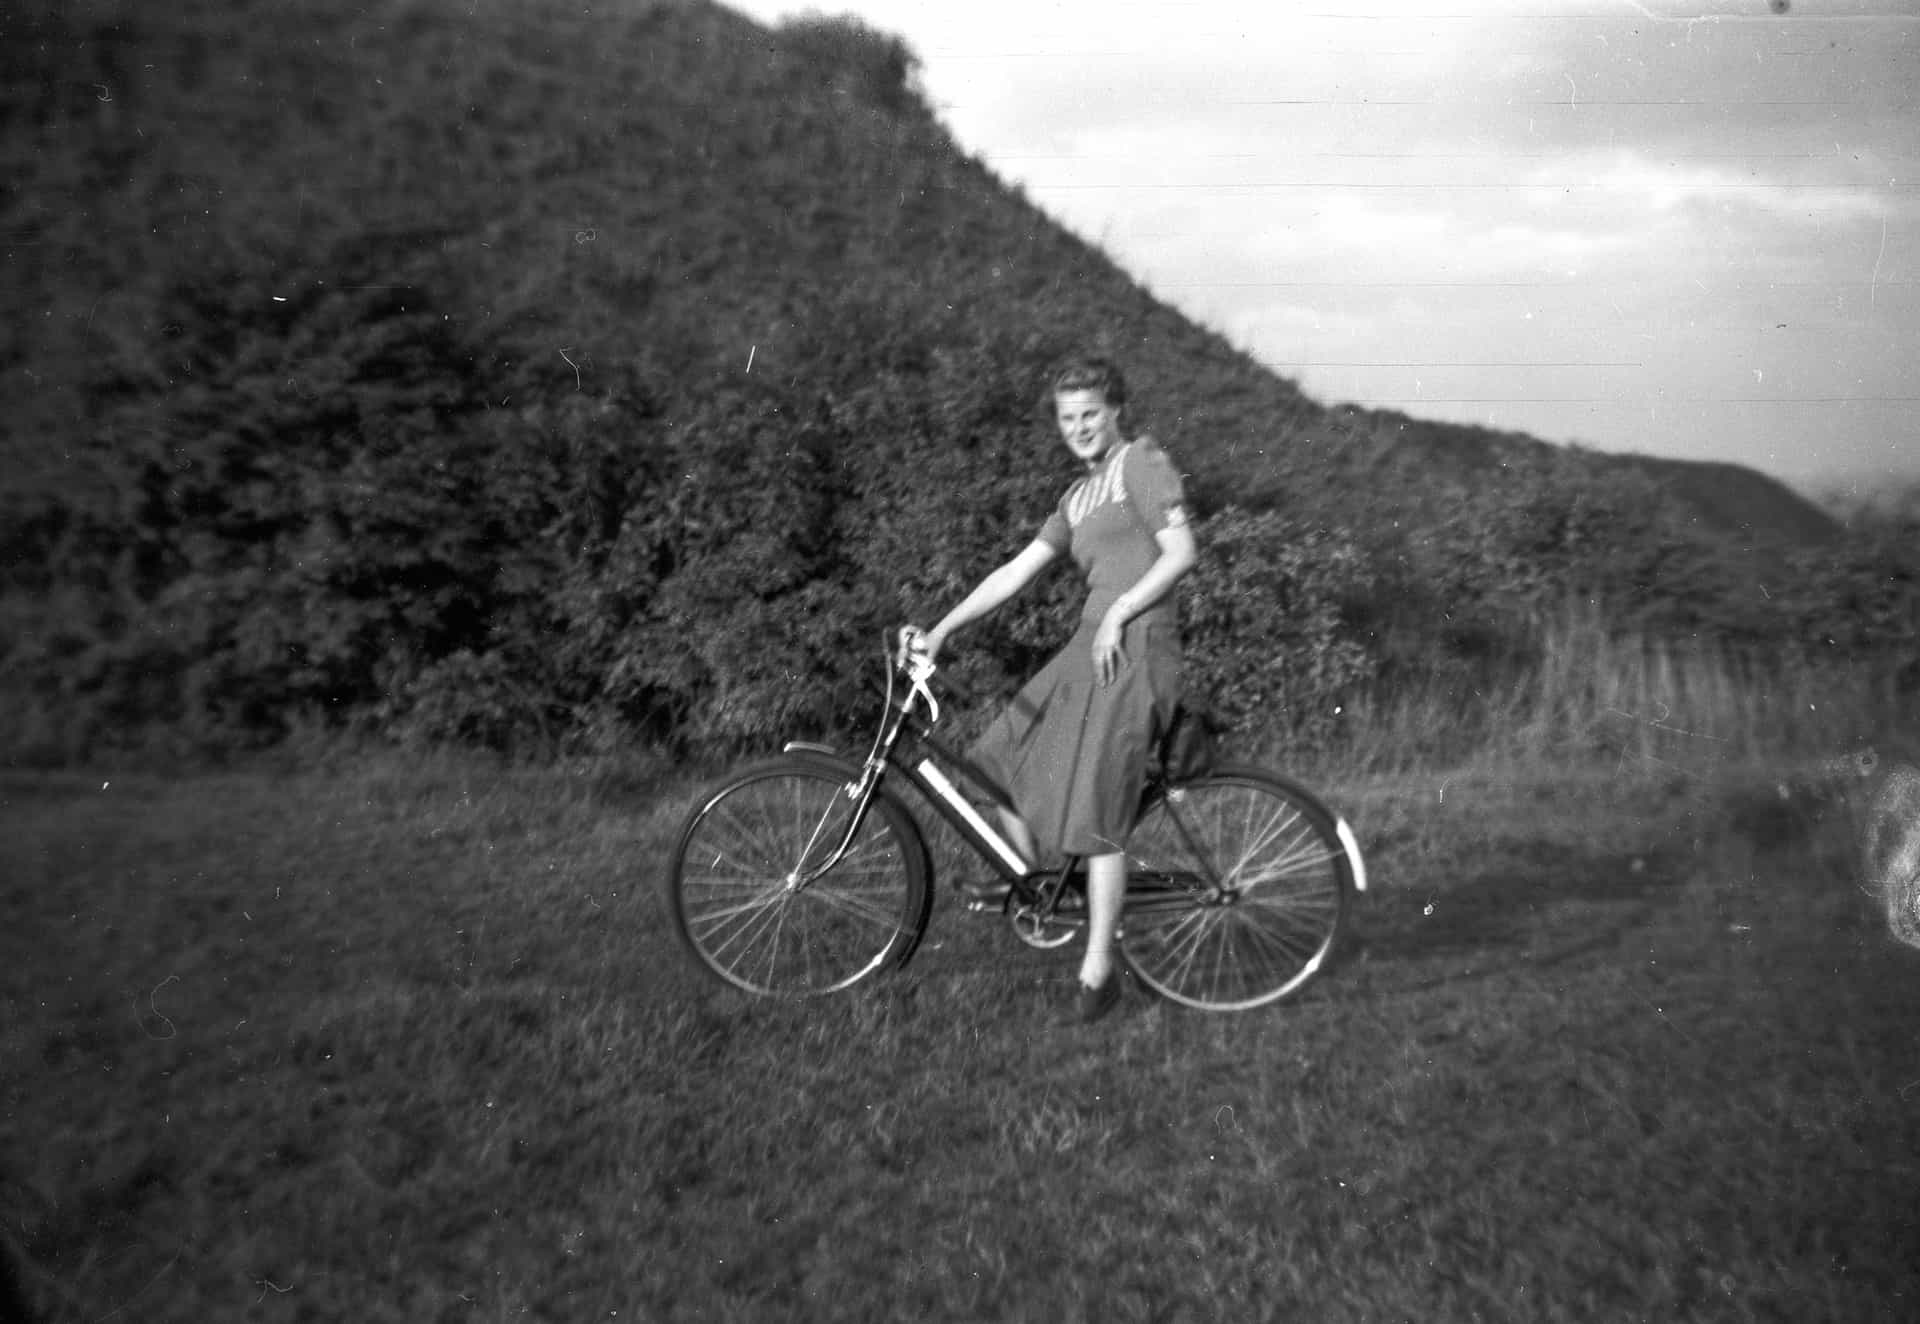 My late sister Jesse showing off her new bike in  1954.